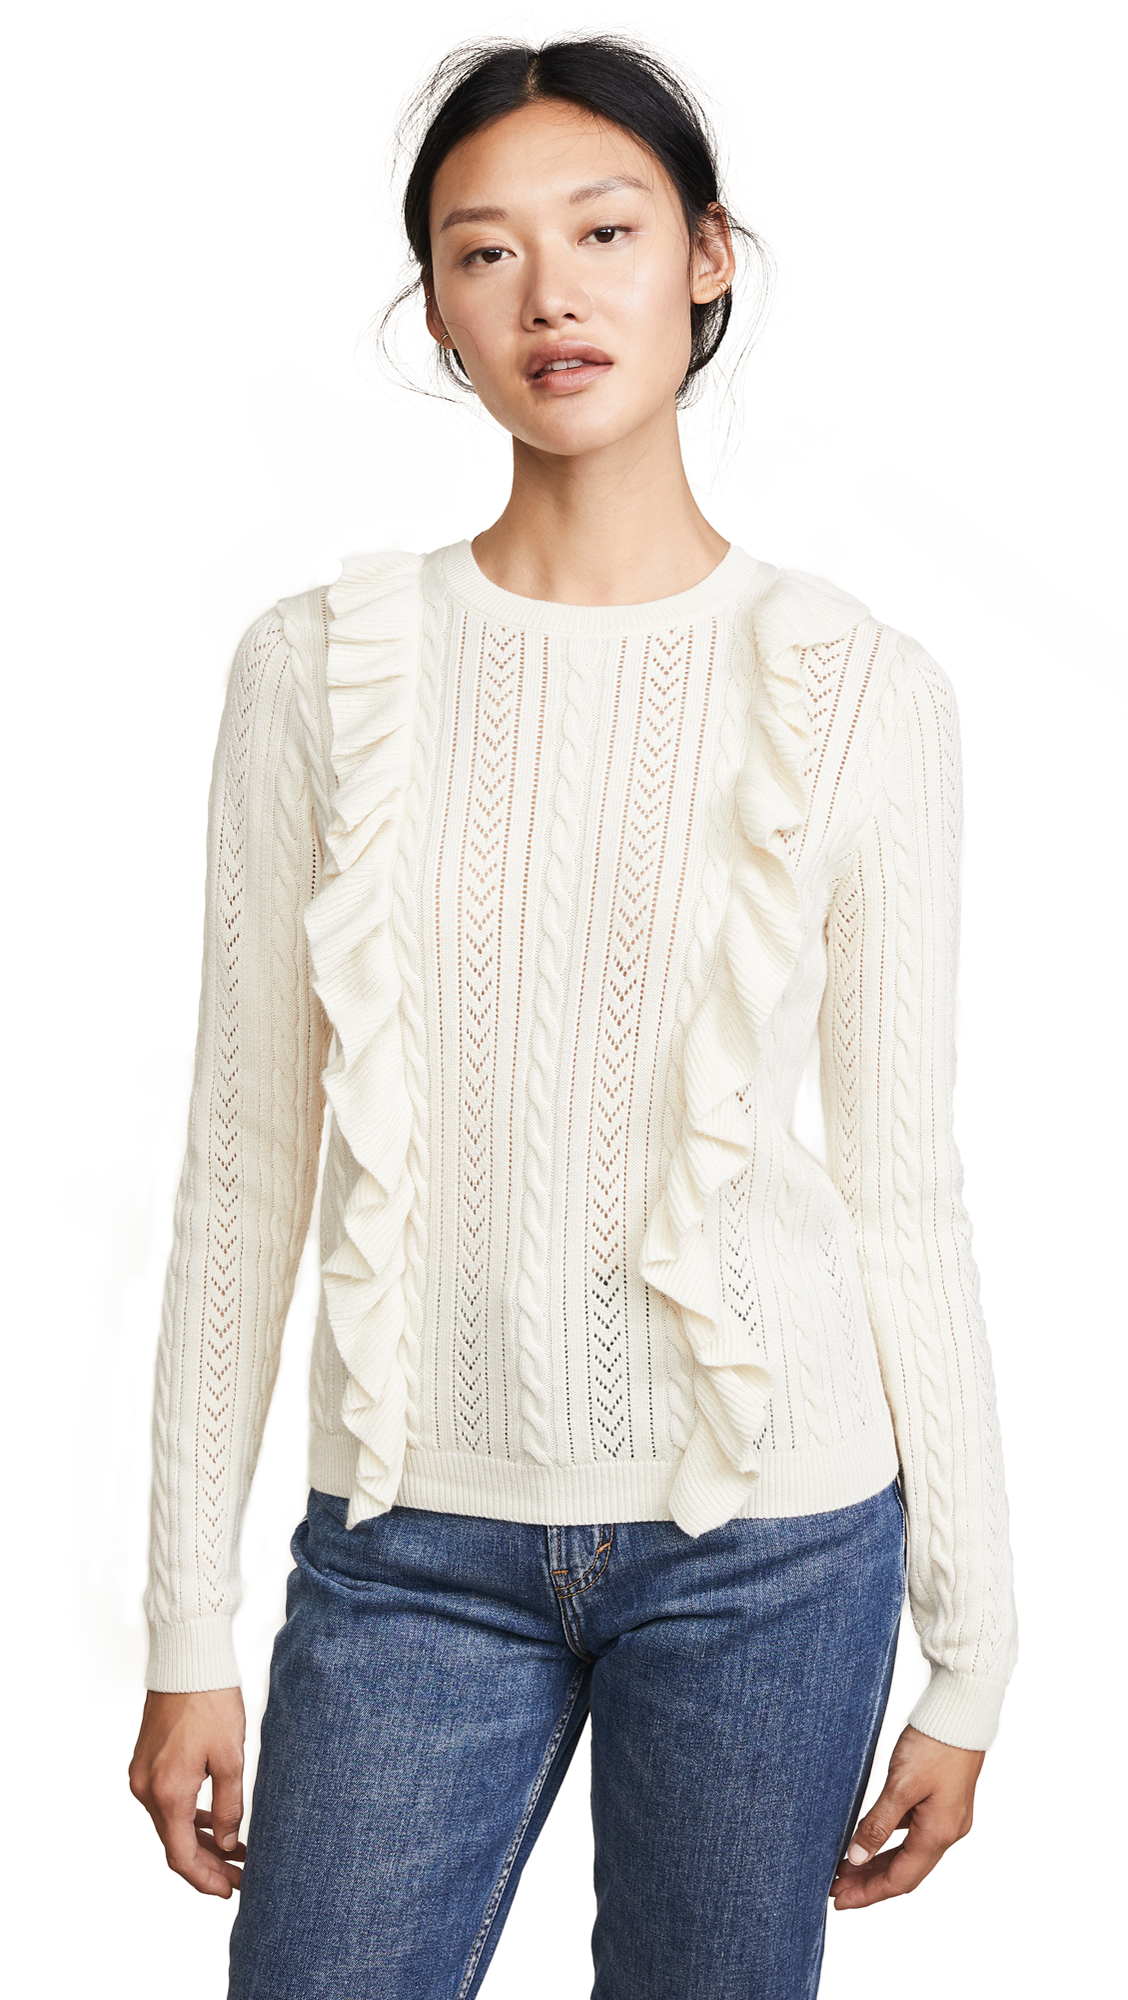 BIRDS OF PARADIS The Elise Ruffle Sweater in Antique White